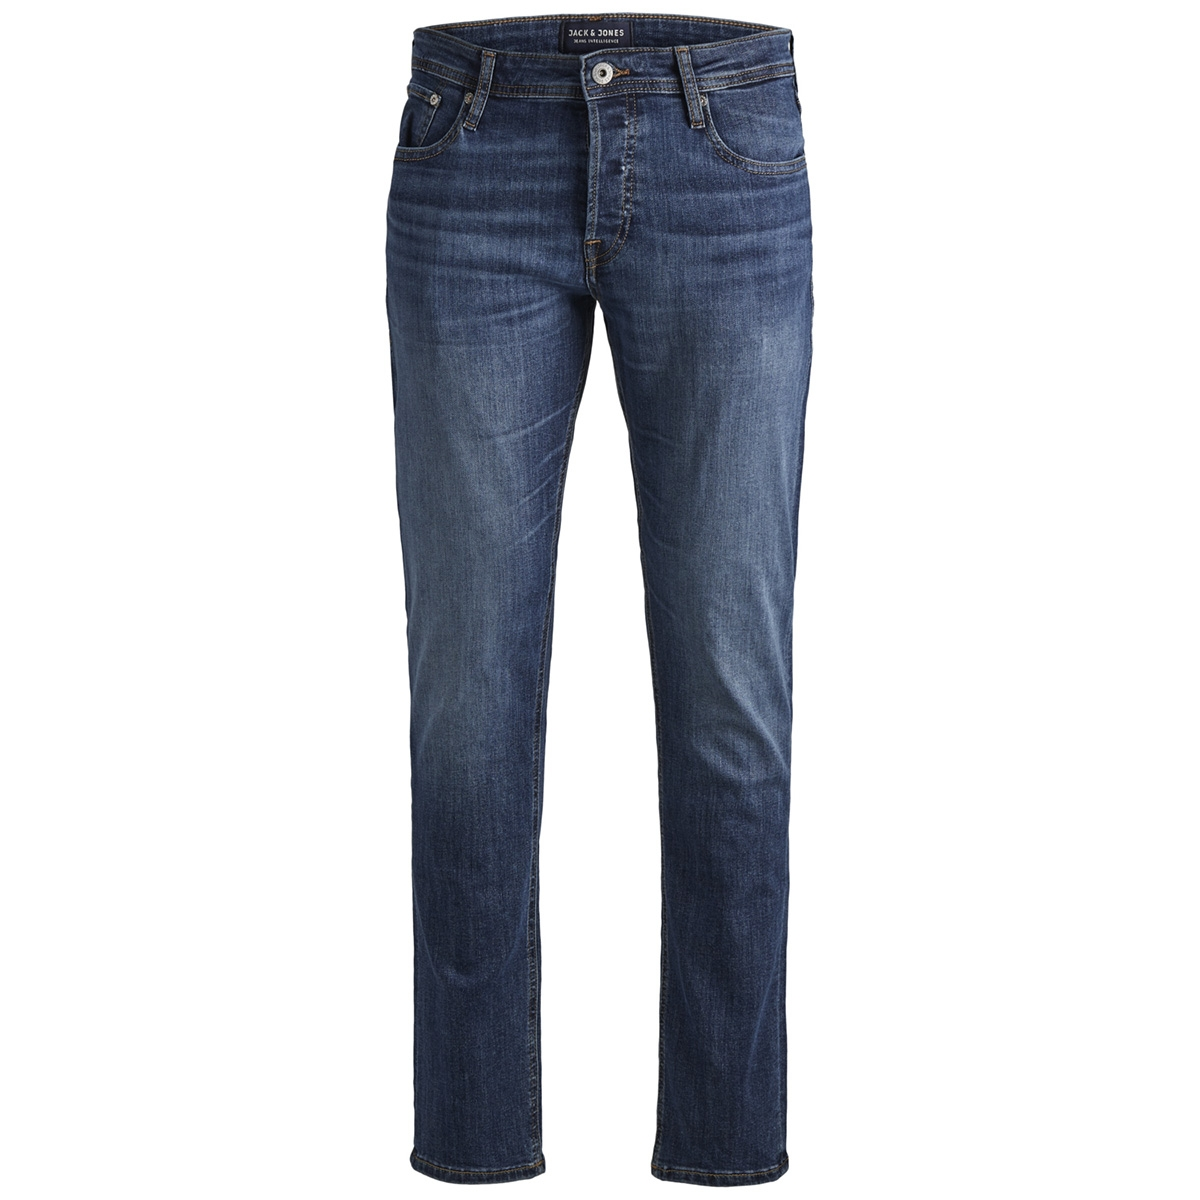 jjimike jjoriginal am 814 12148874 jack & jones jeans blue denim